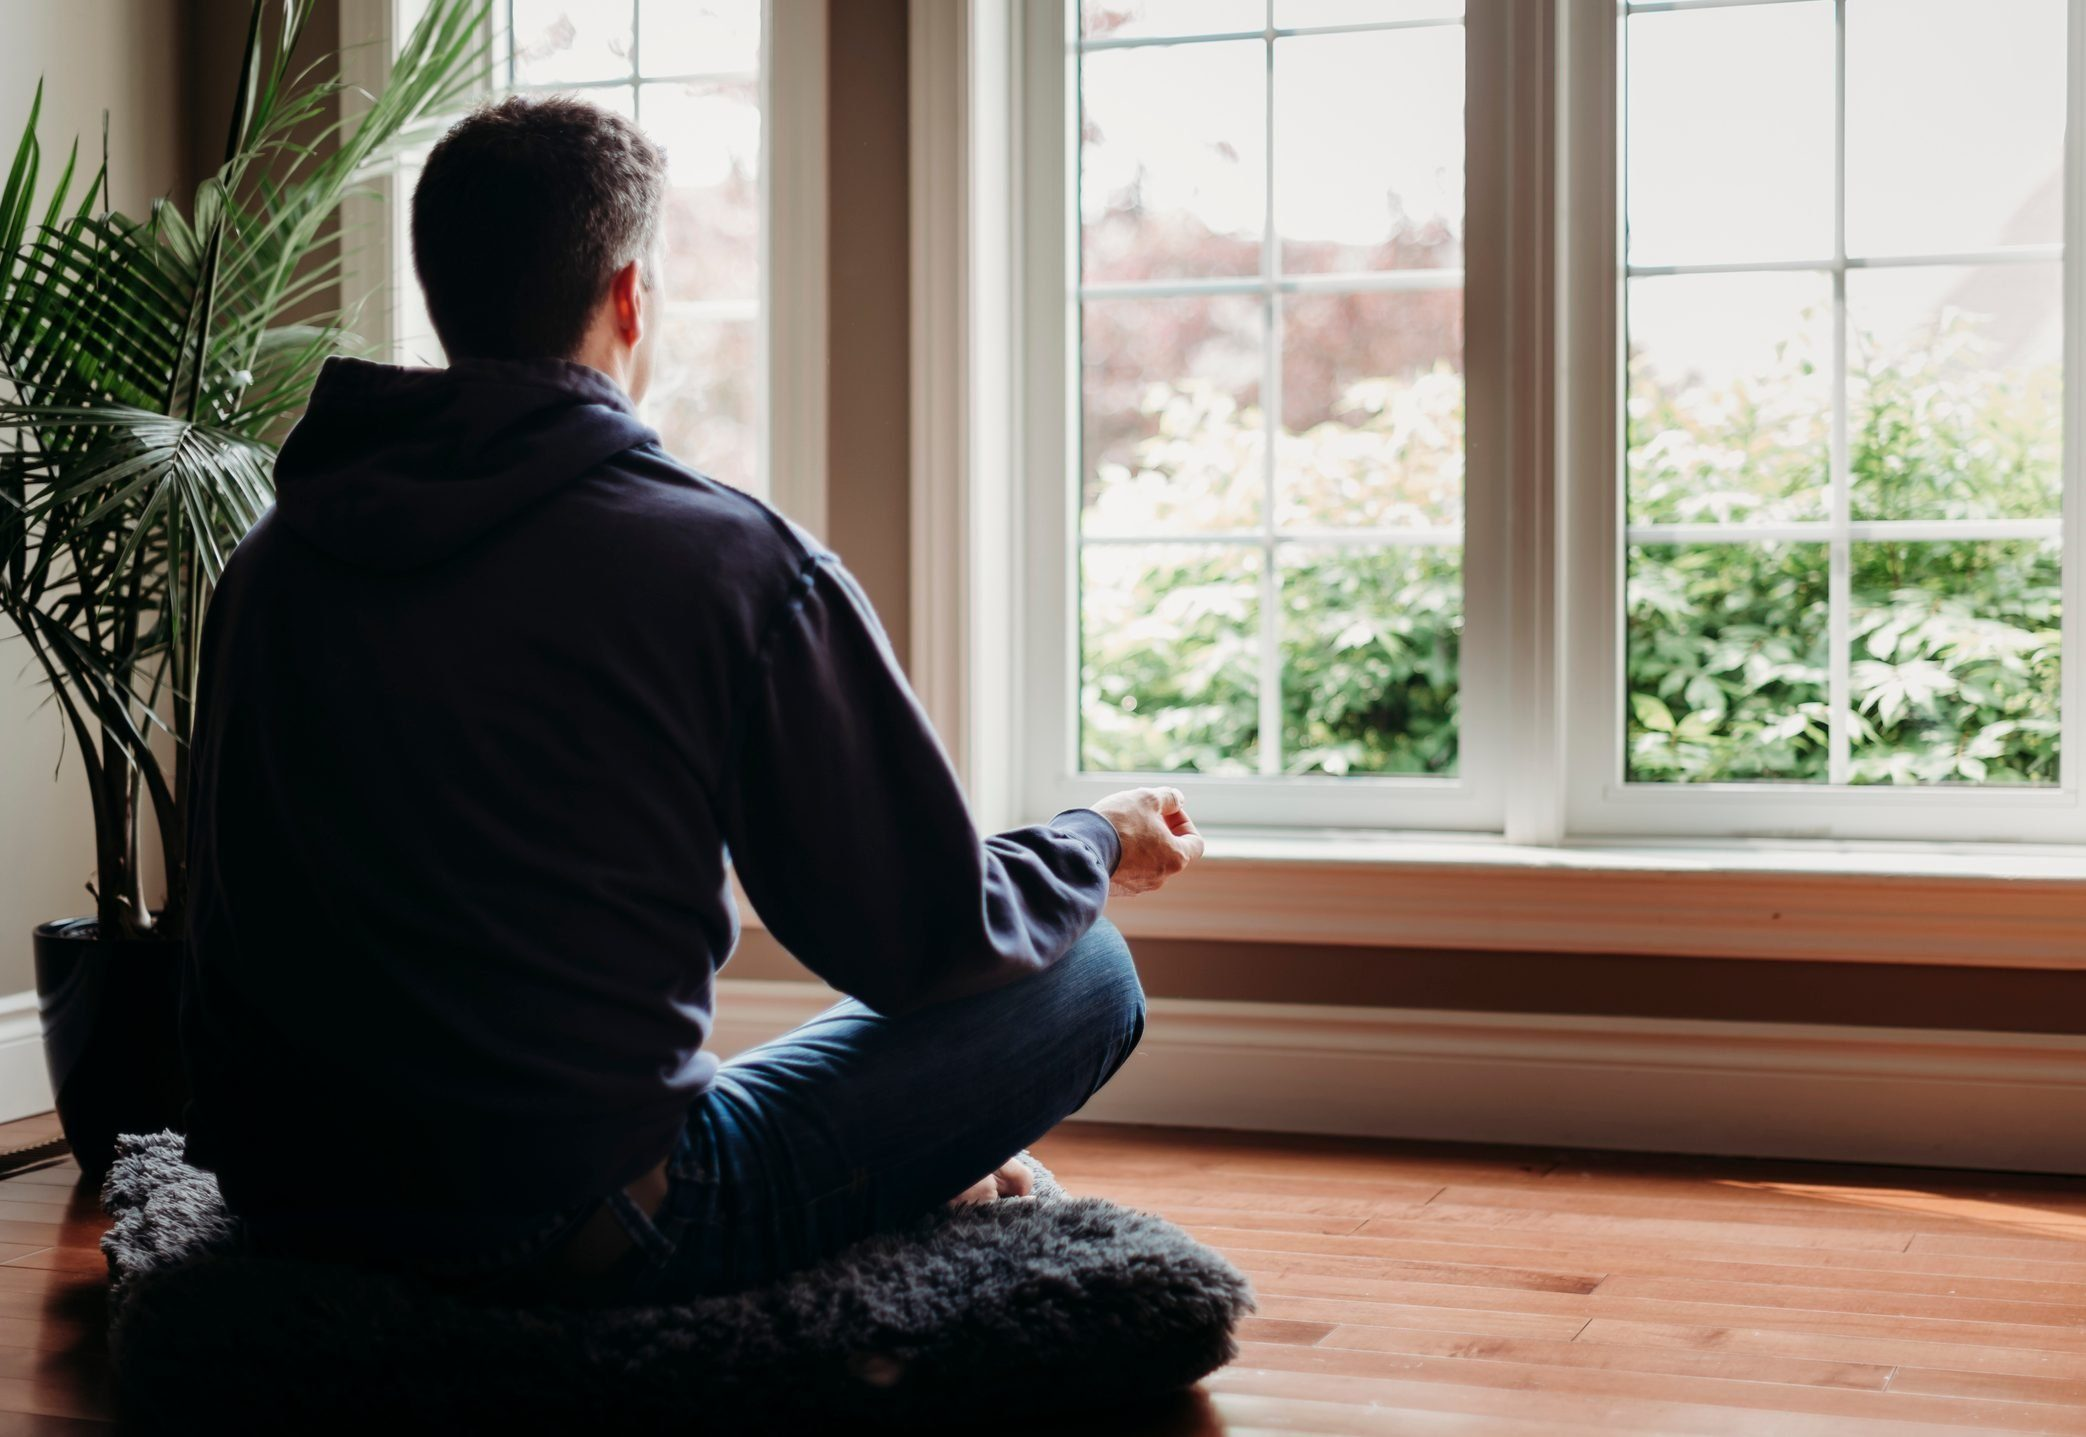 Man sitting on the floor indoors meditating in front of windows.